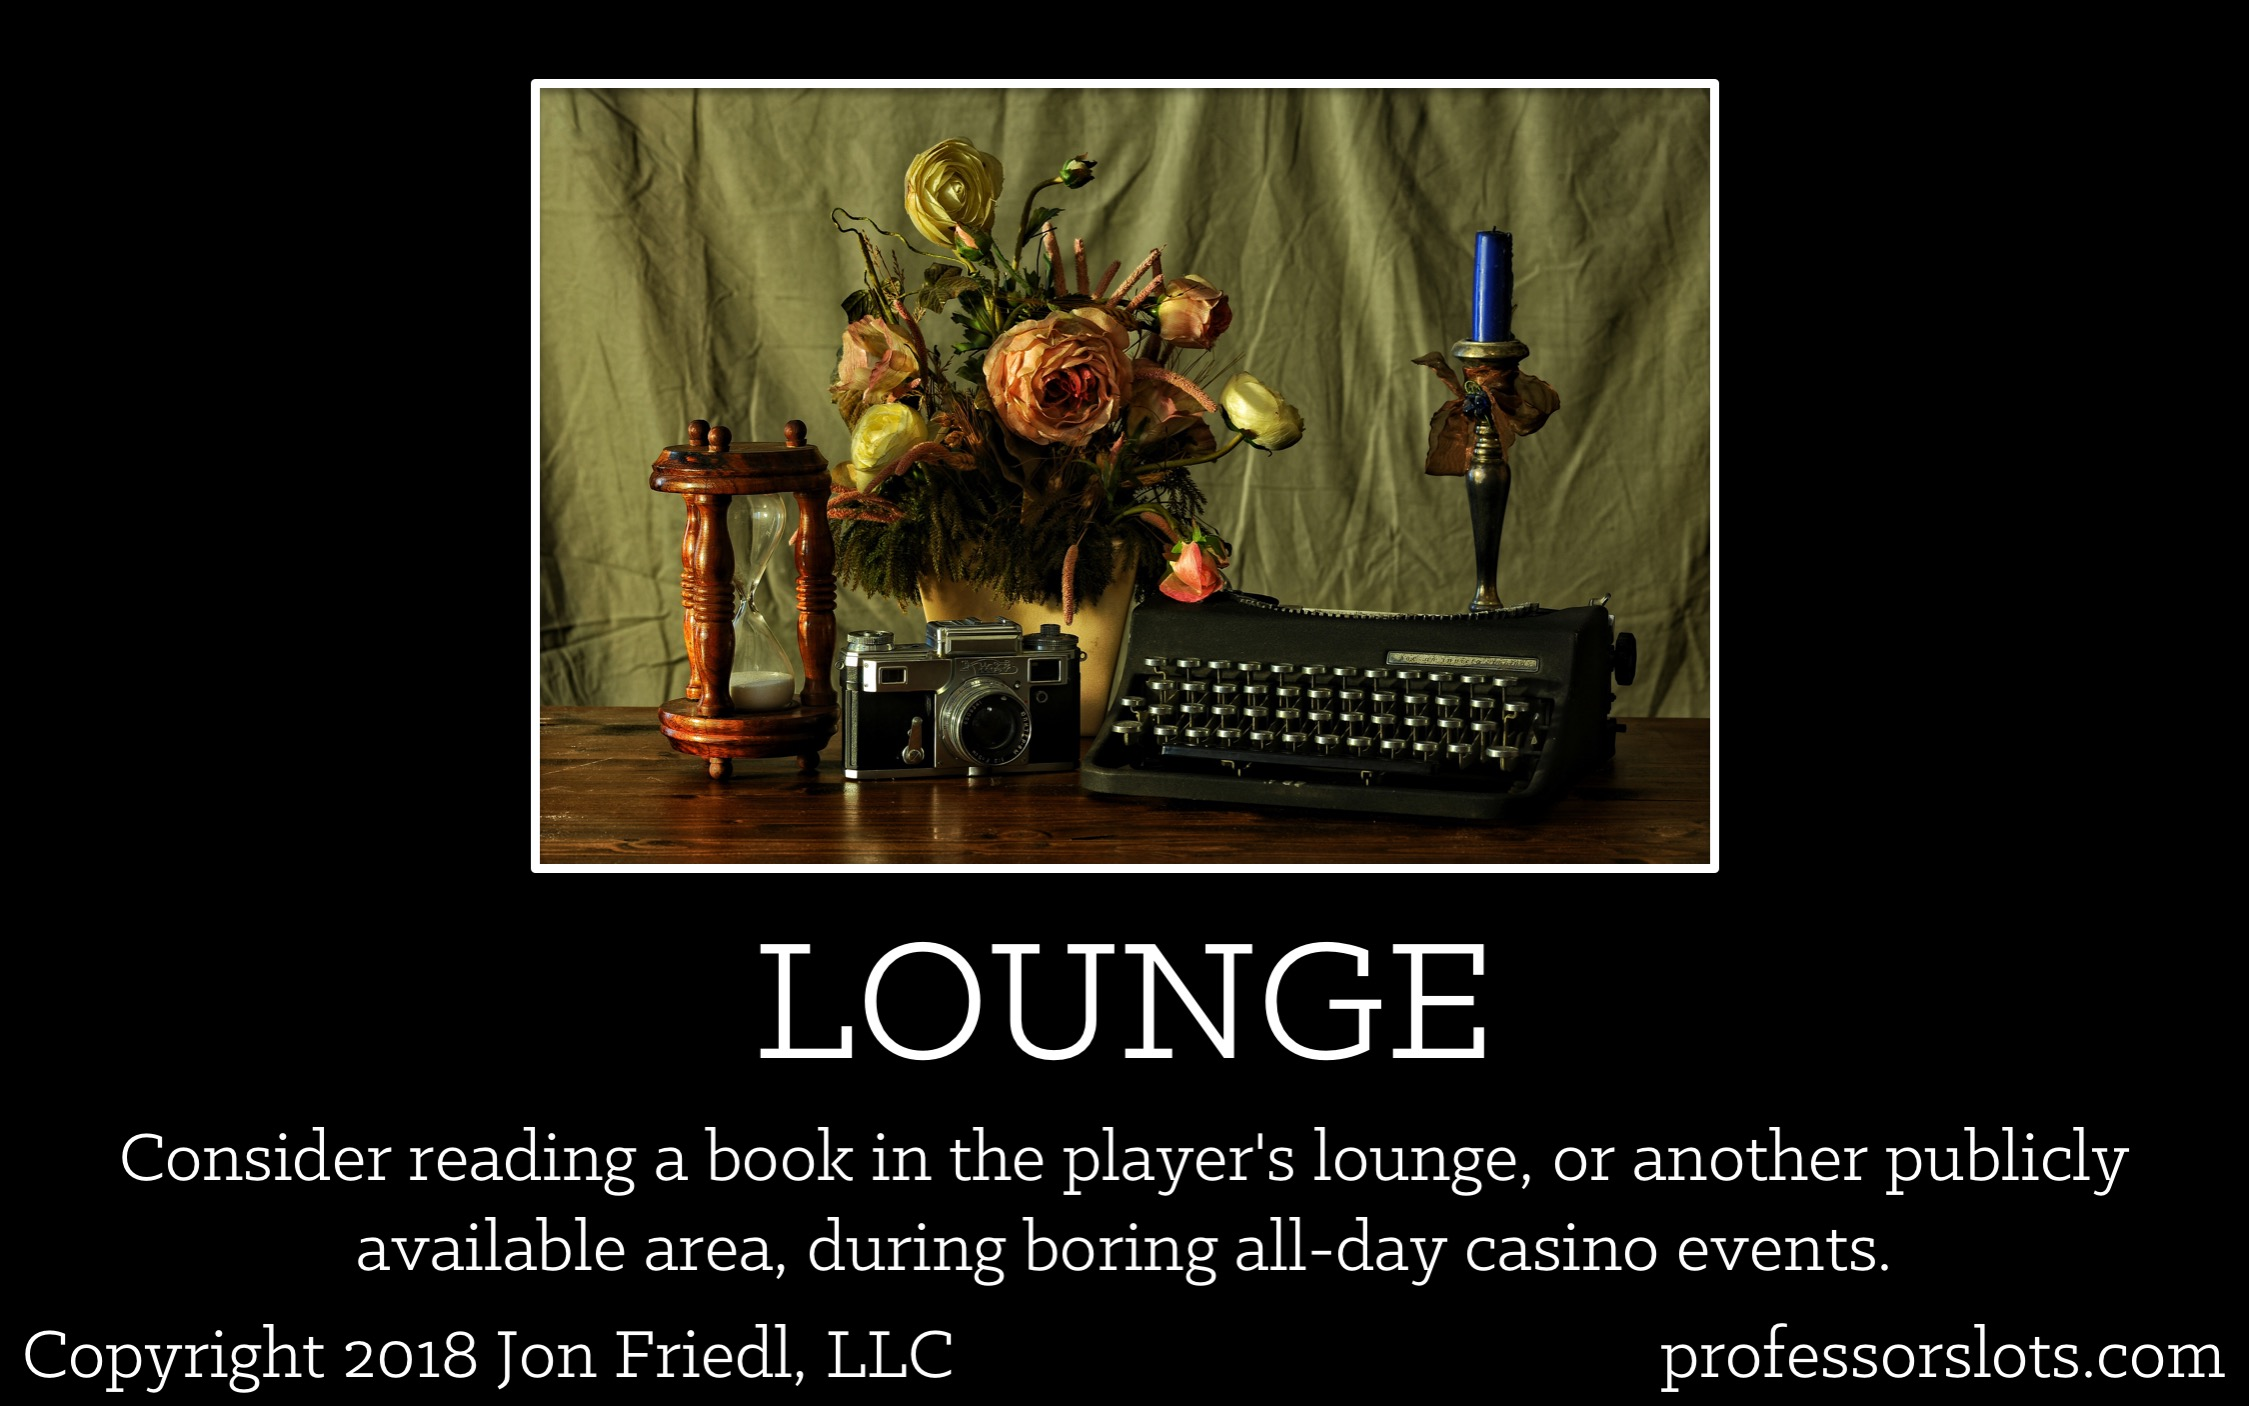 How I Won A Car: Consider reading a book in the player's lounge, or another publicly available area, during boring all-day casino events.